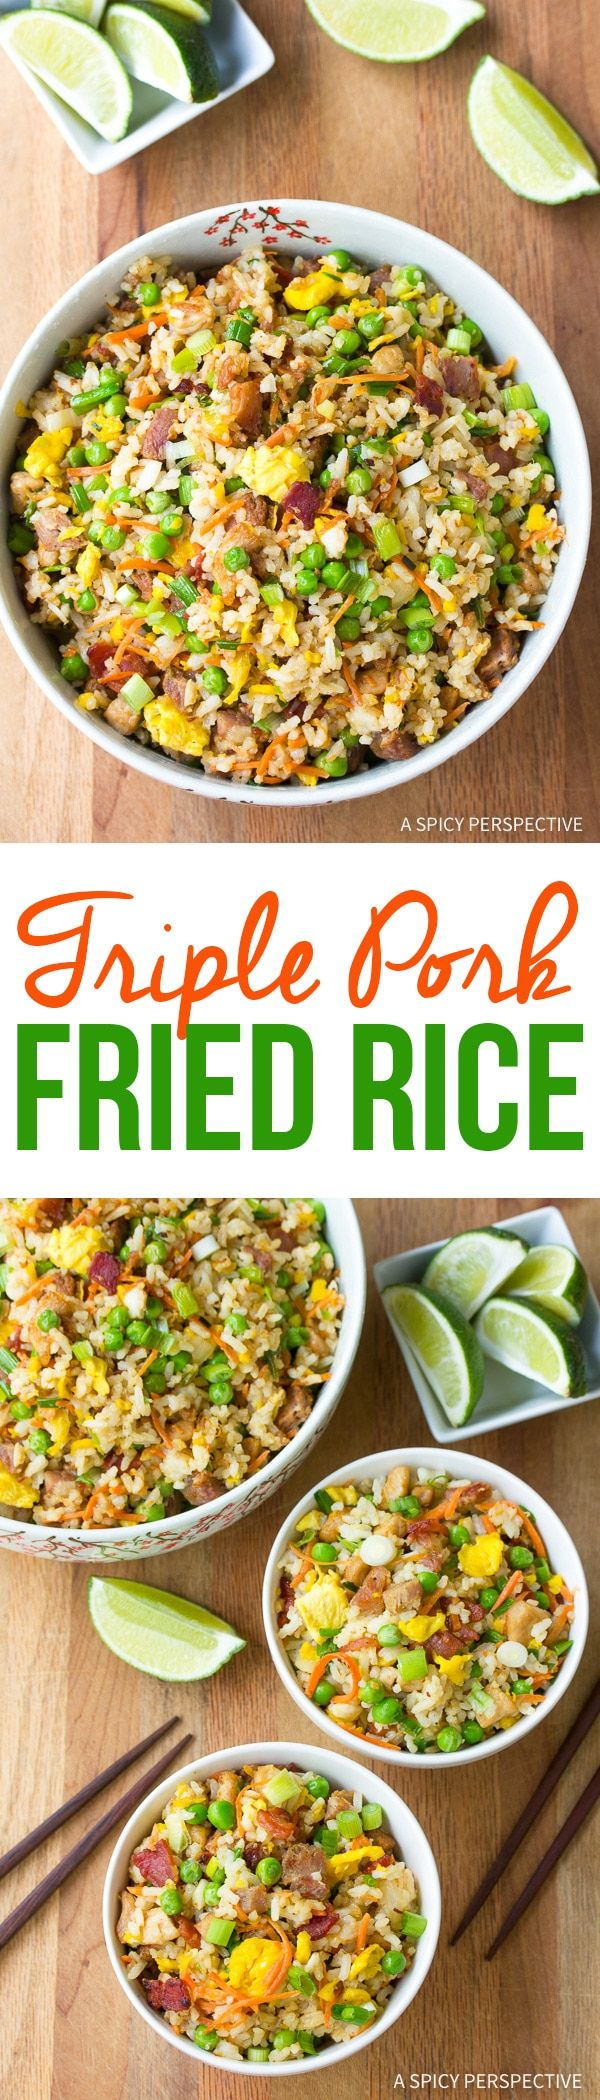 Triple Pork Fried Rice, a classic Asian-inspired Hawaiian dish, is comfort food at it's best. This pork fried rice recipe is loaded with bacon, pork and ham via @spicyperspectiv